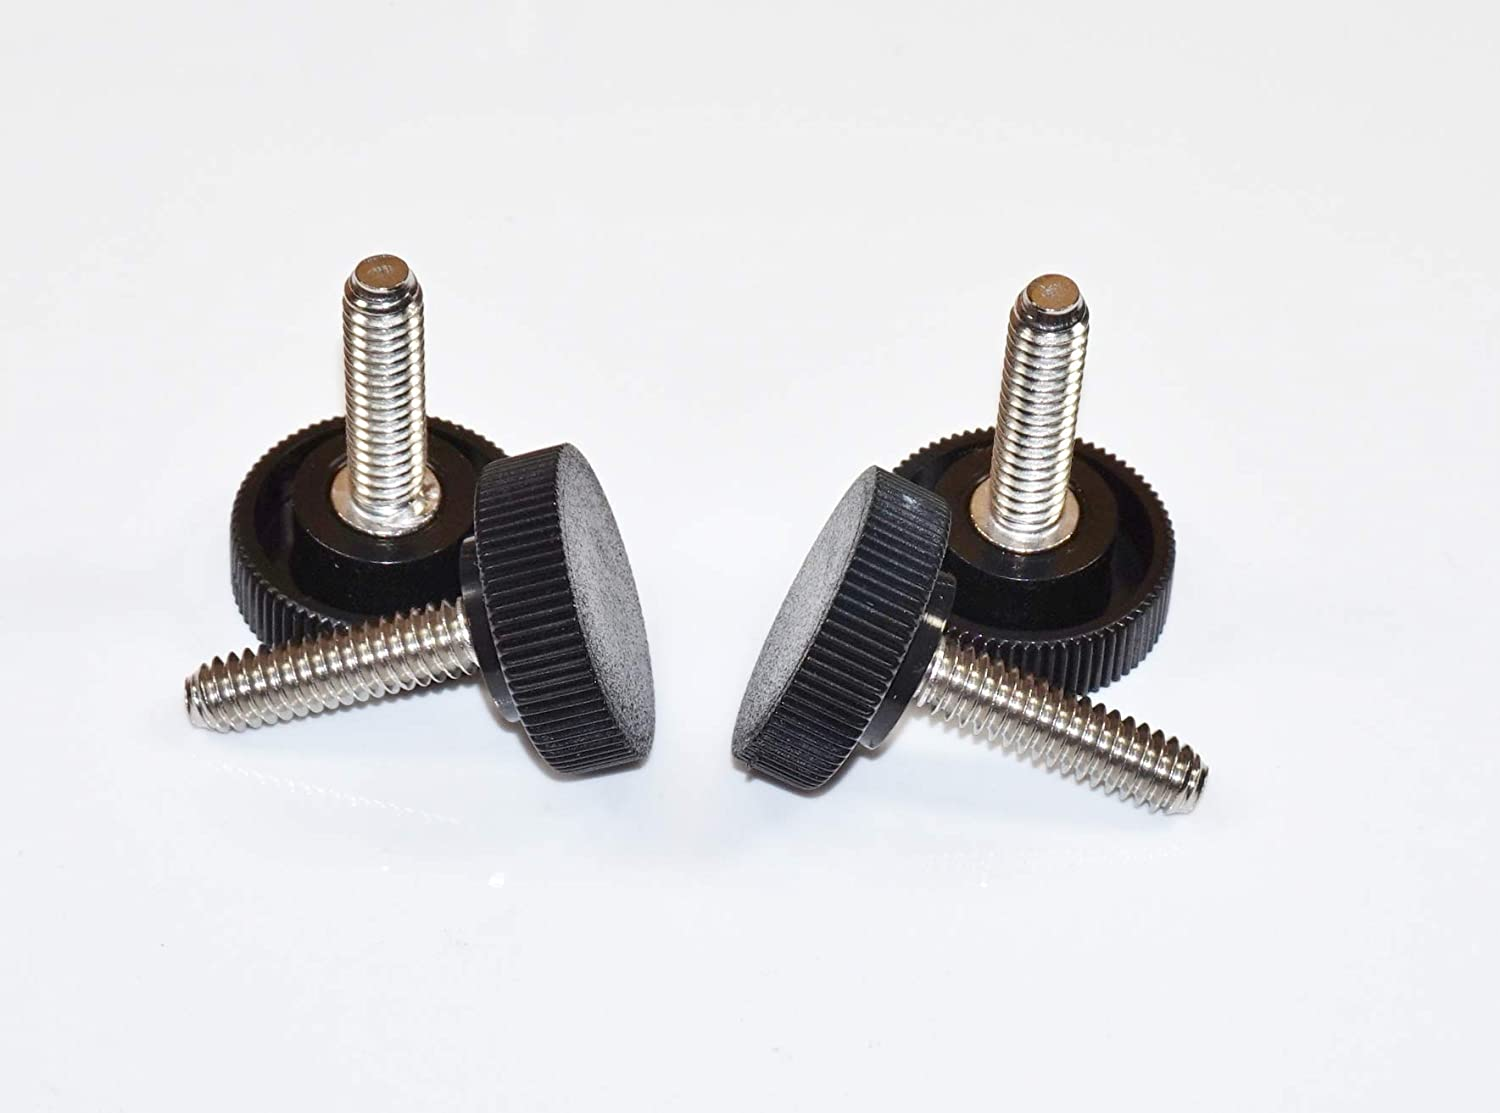 4 1//4-20 x 7//8 Long Stainless Steel Thumb Screws 1 Round Knurled Plastic Head Four